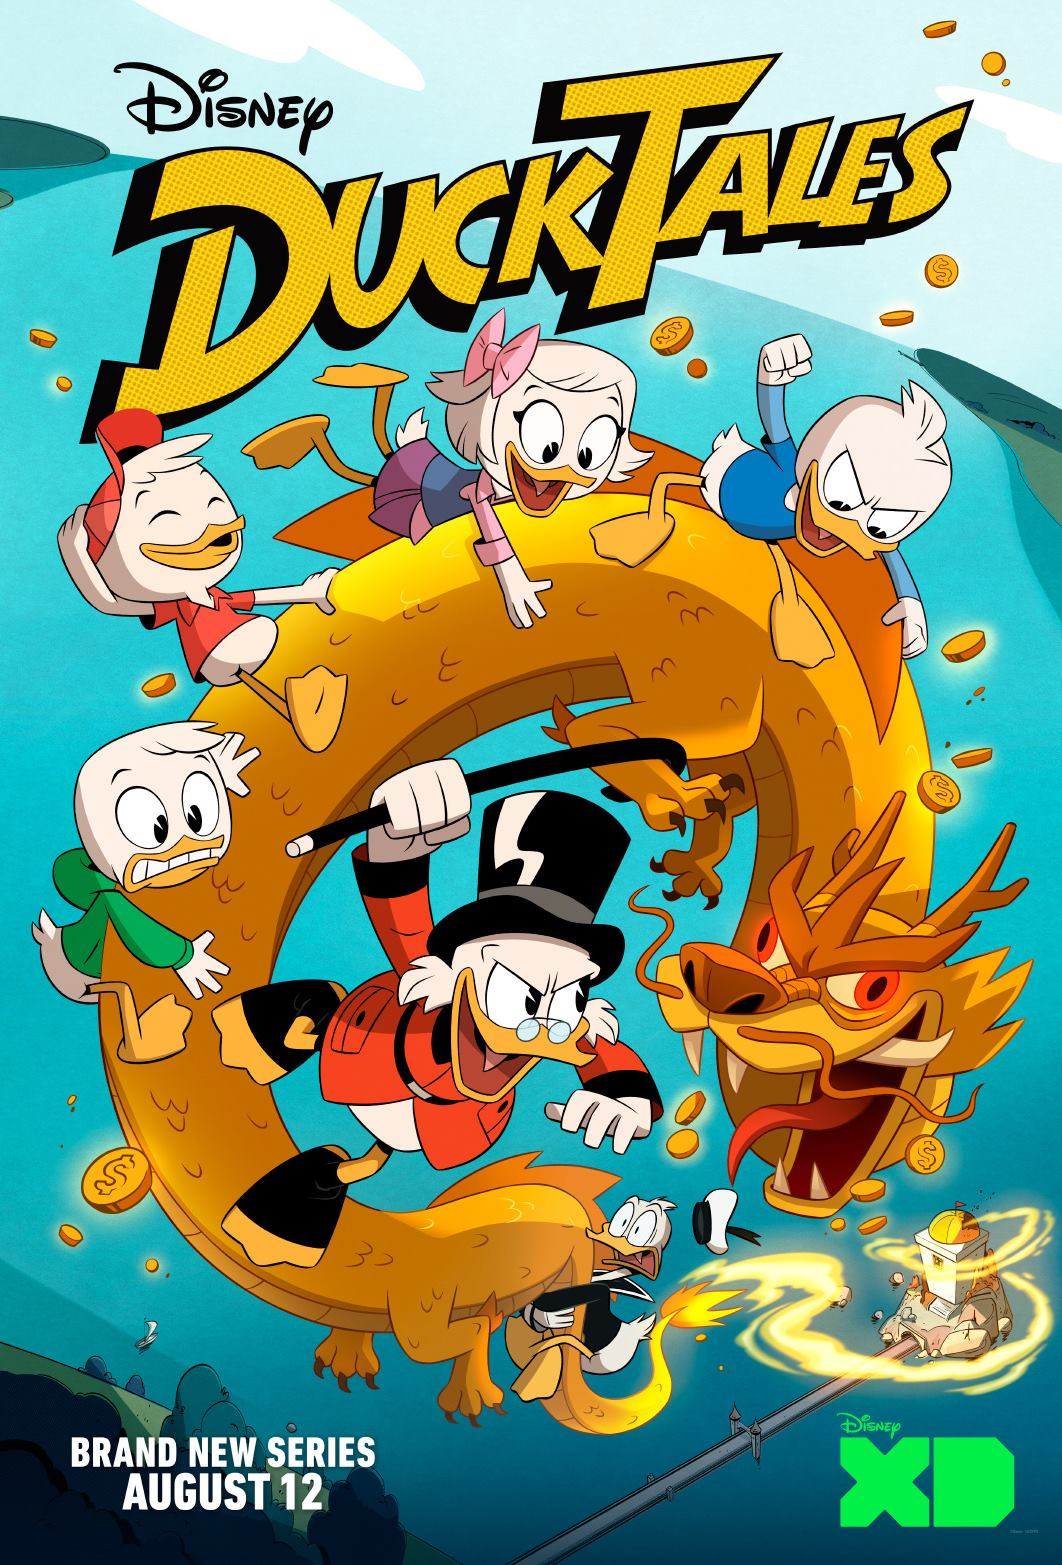 DuckTales Premieres August 12th! We Interviewed The Shows Producers!